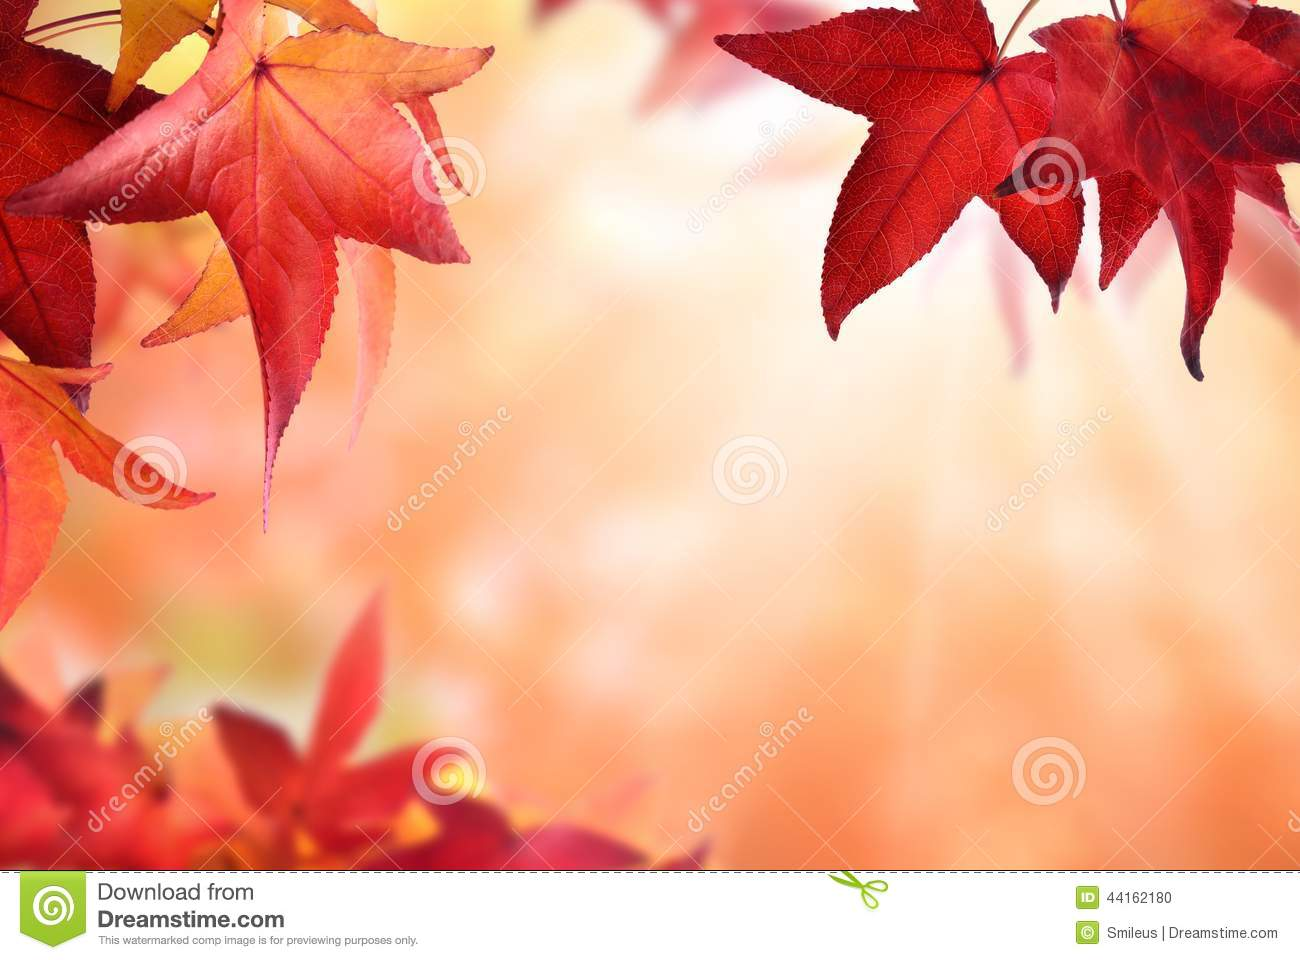 Architecture Wallpaper Fall Autumn Bokeh Background With Red Leaves Stock Photo